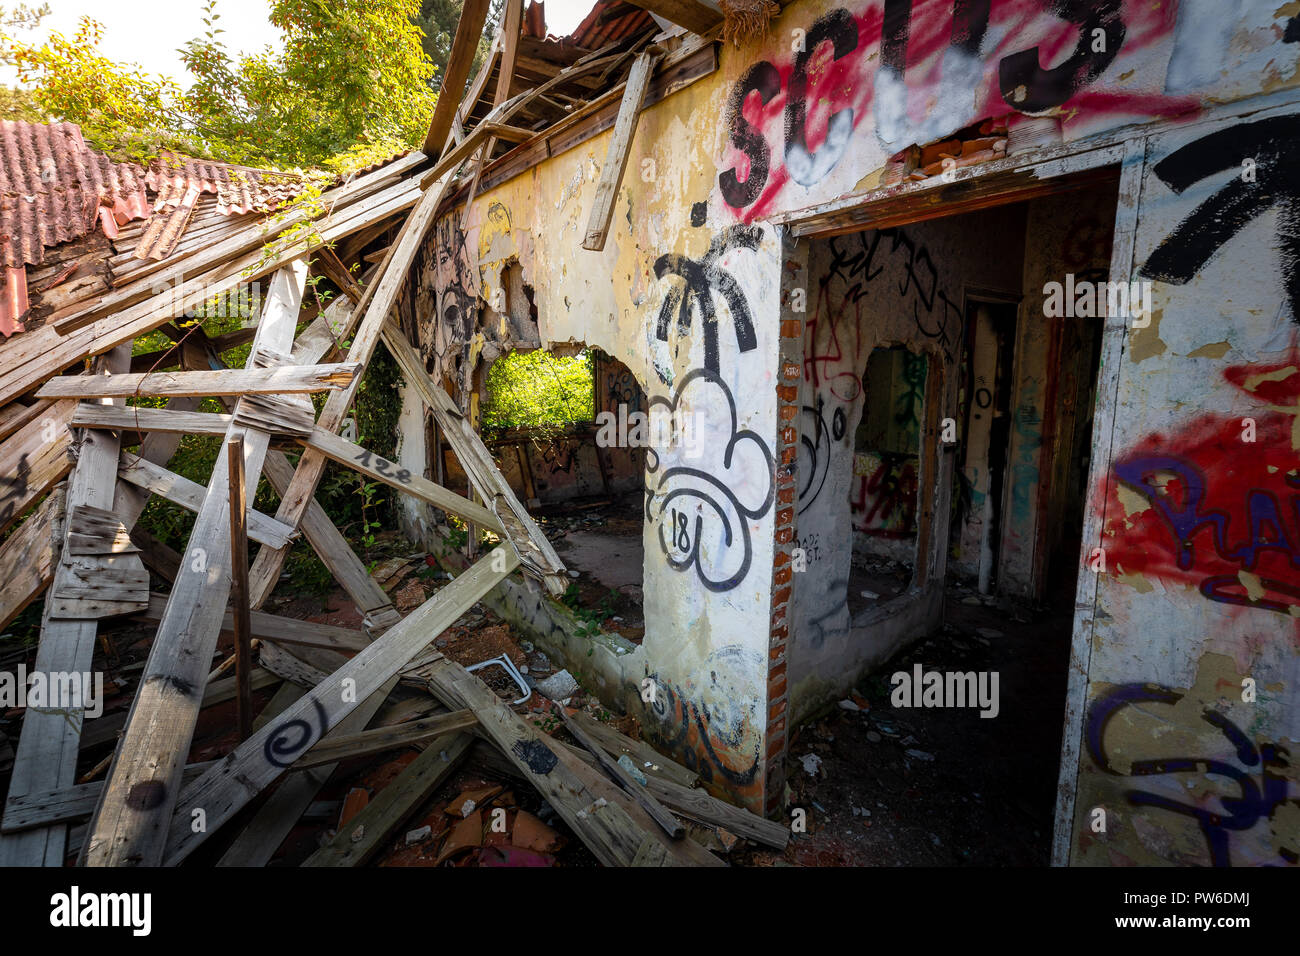 Photographic reportage of the abandoned city of Consonno (Lecco, Italy) Stock Photo